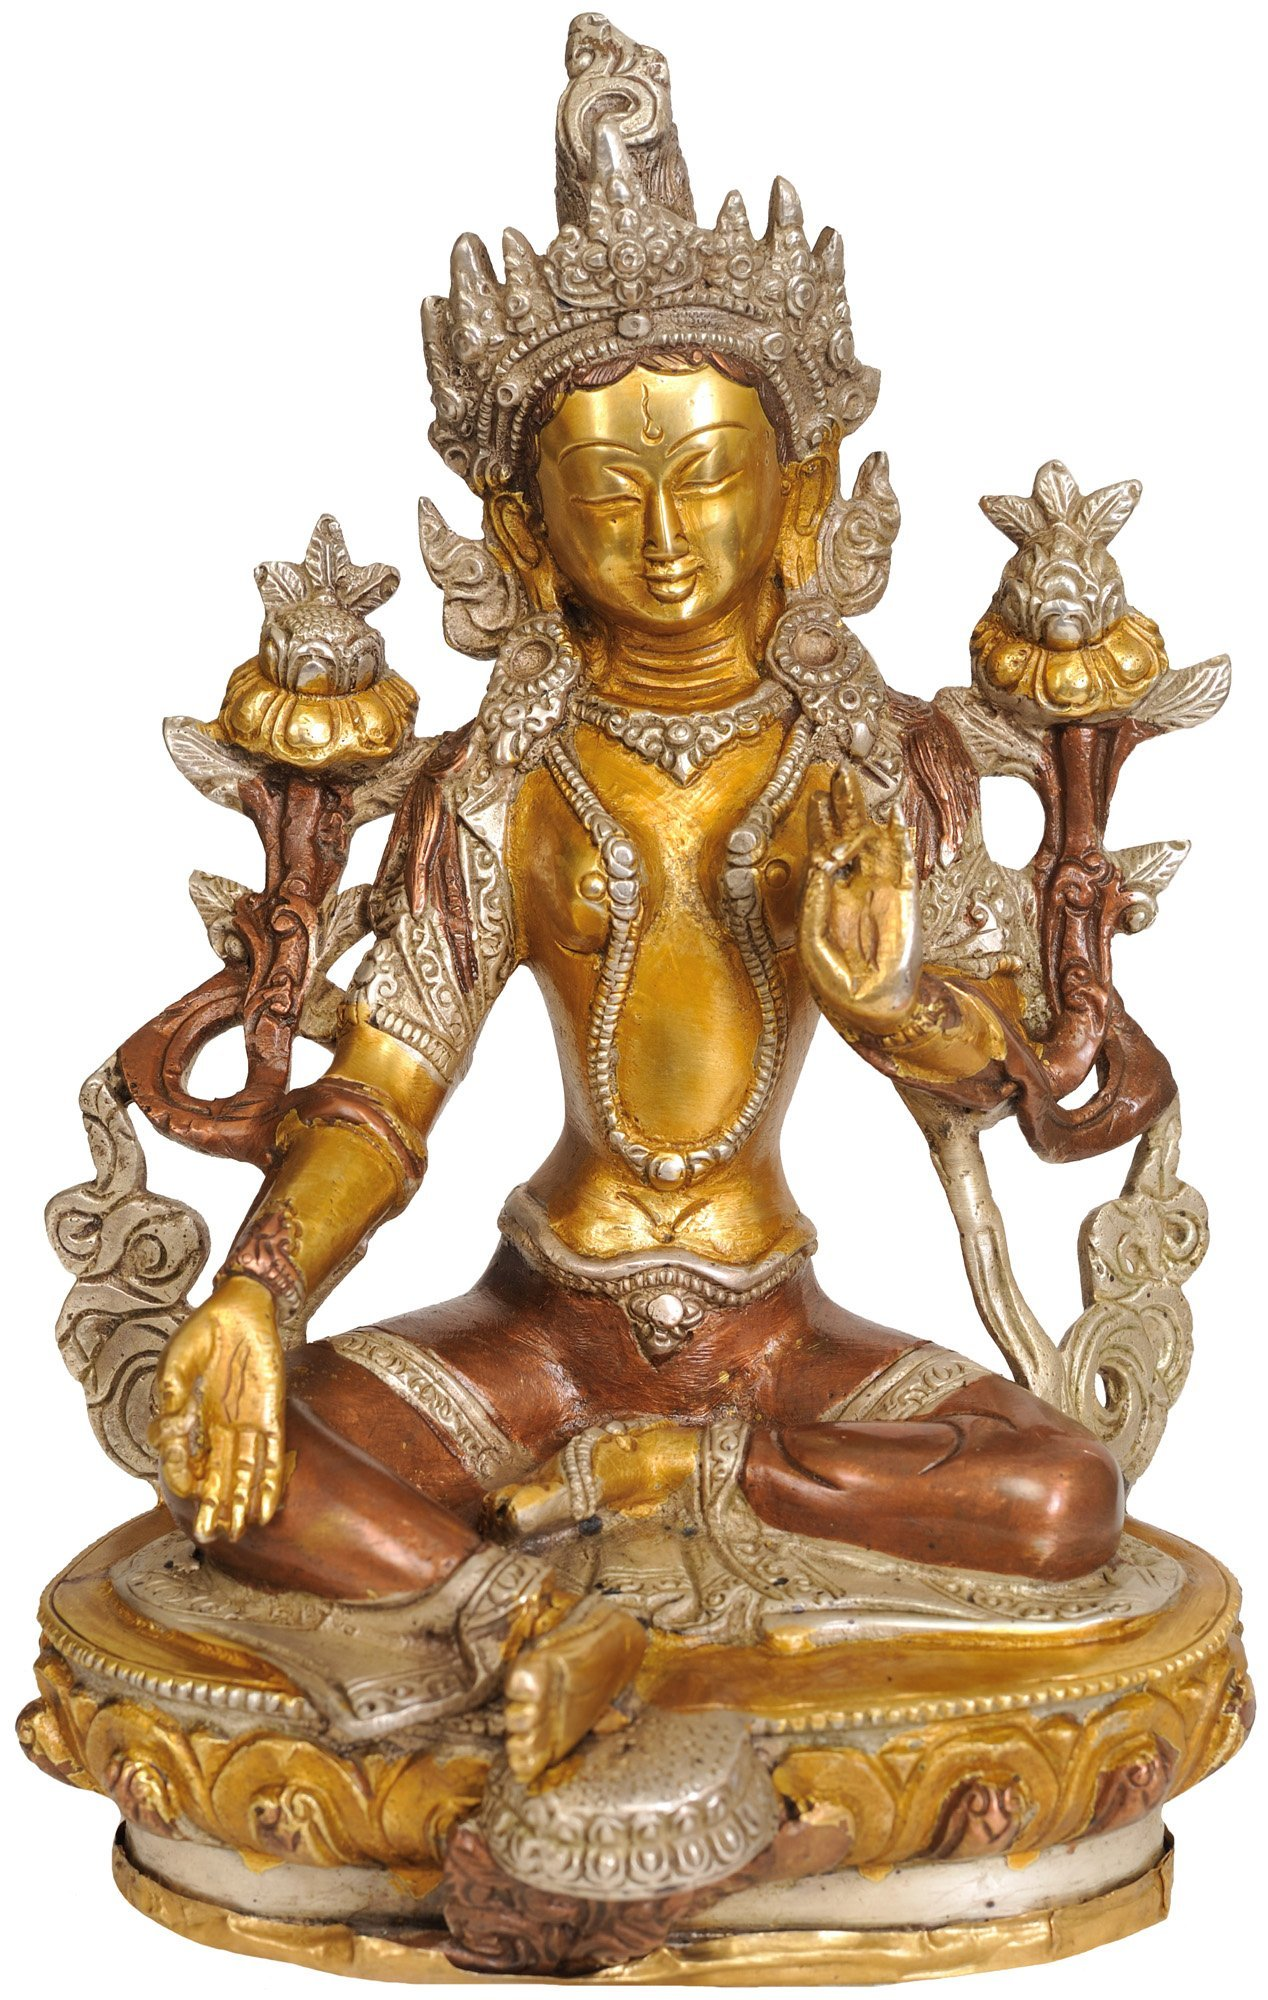 Exotic India ZBW04 Saviour Goddess Green Tara (Tibetan Buddhist Deity)